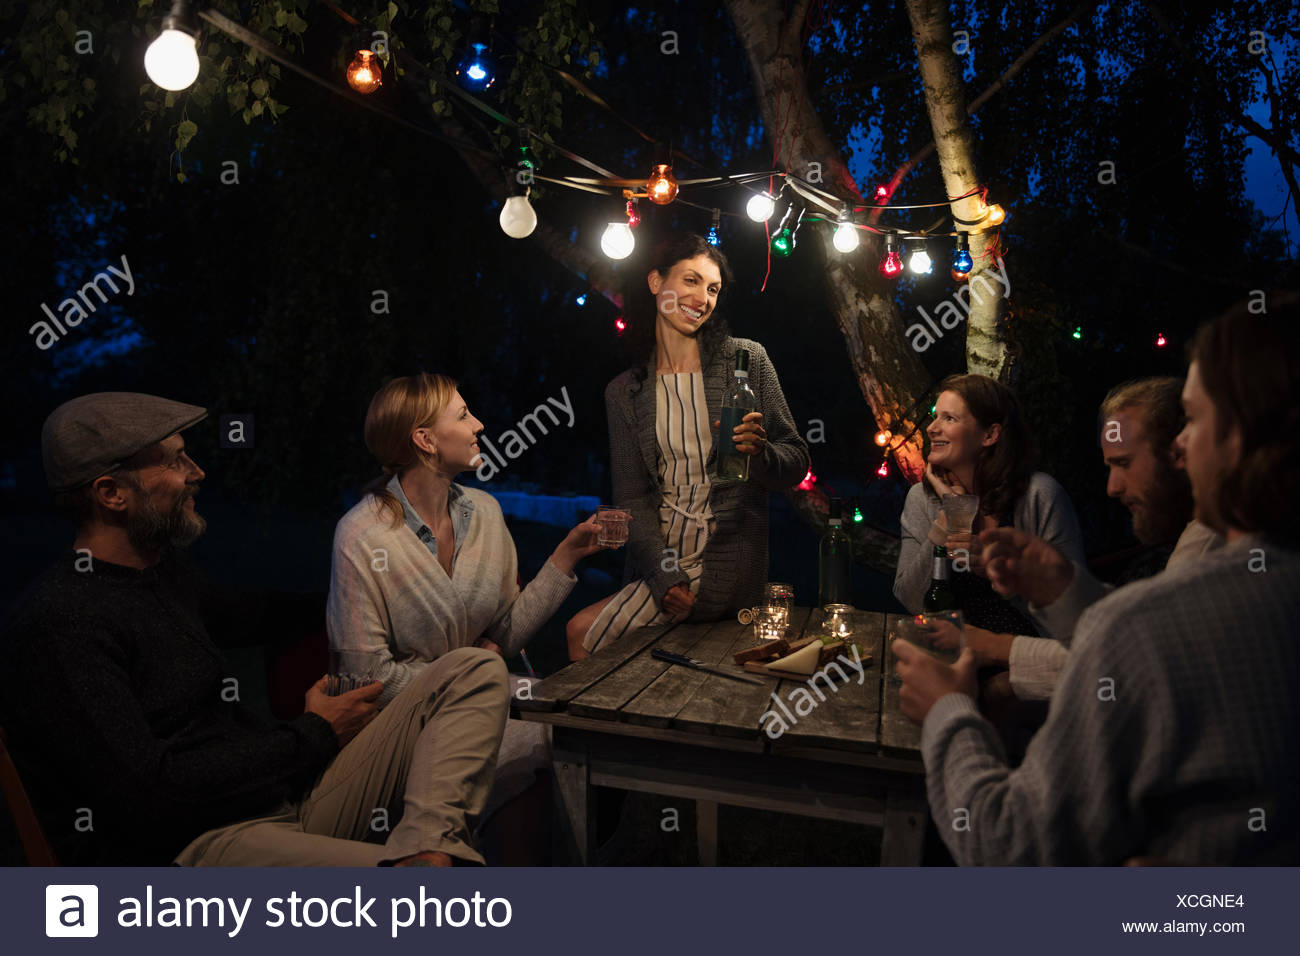 Friends drinking and toasting under string lights at dark garden party - Stock Image